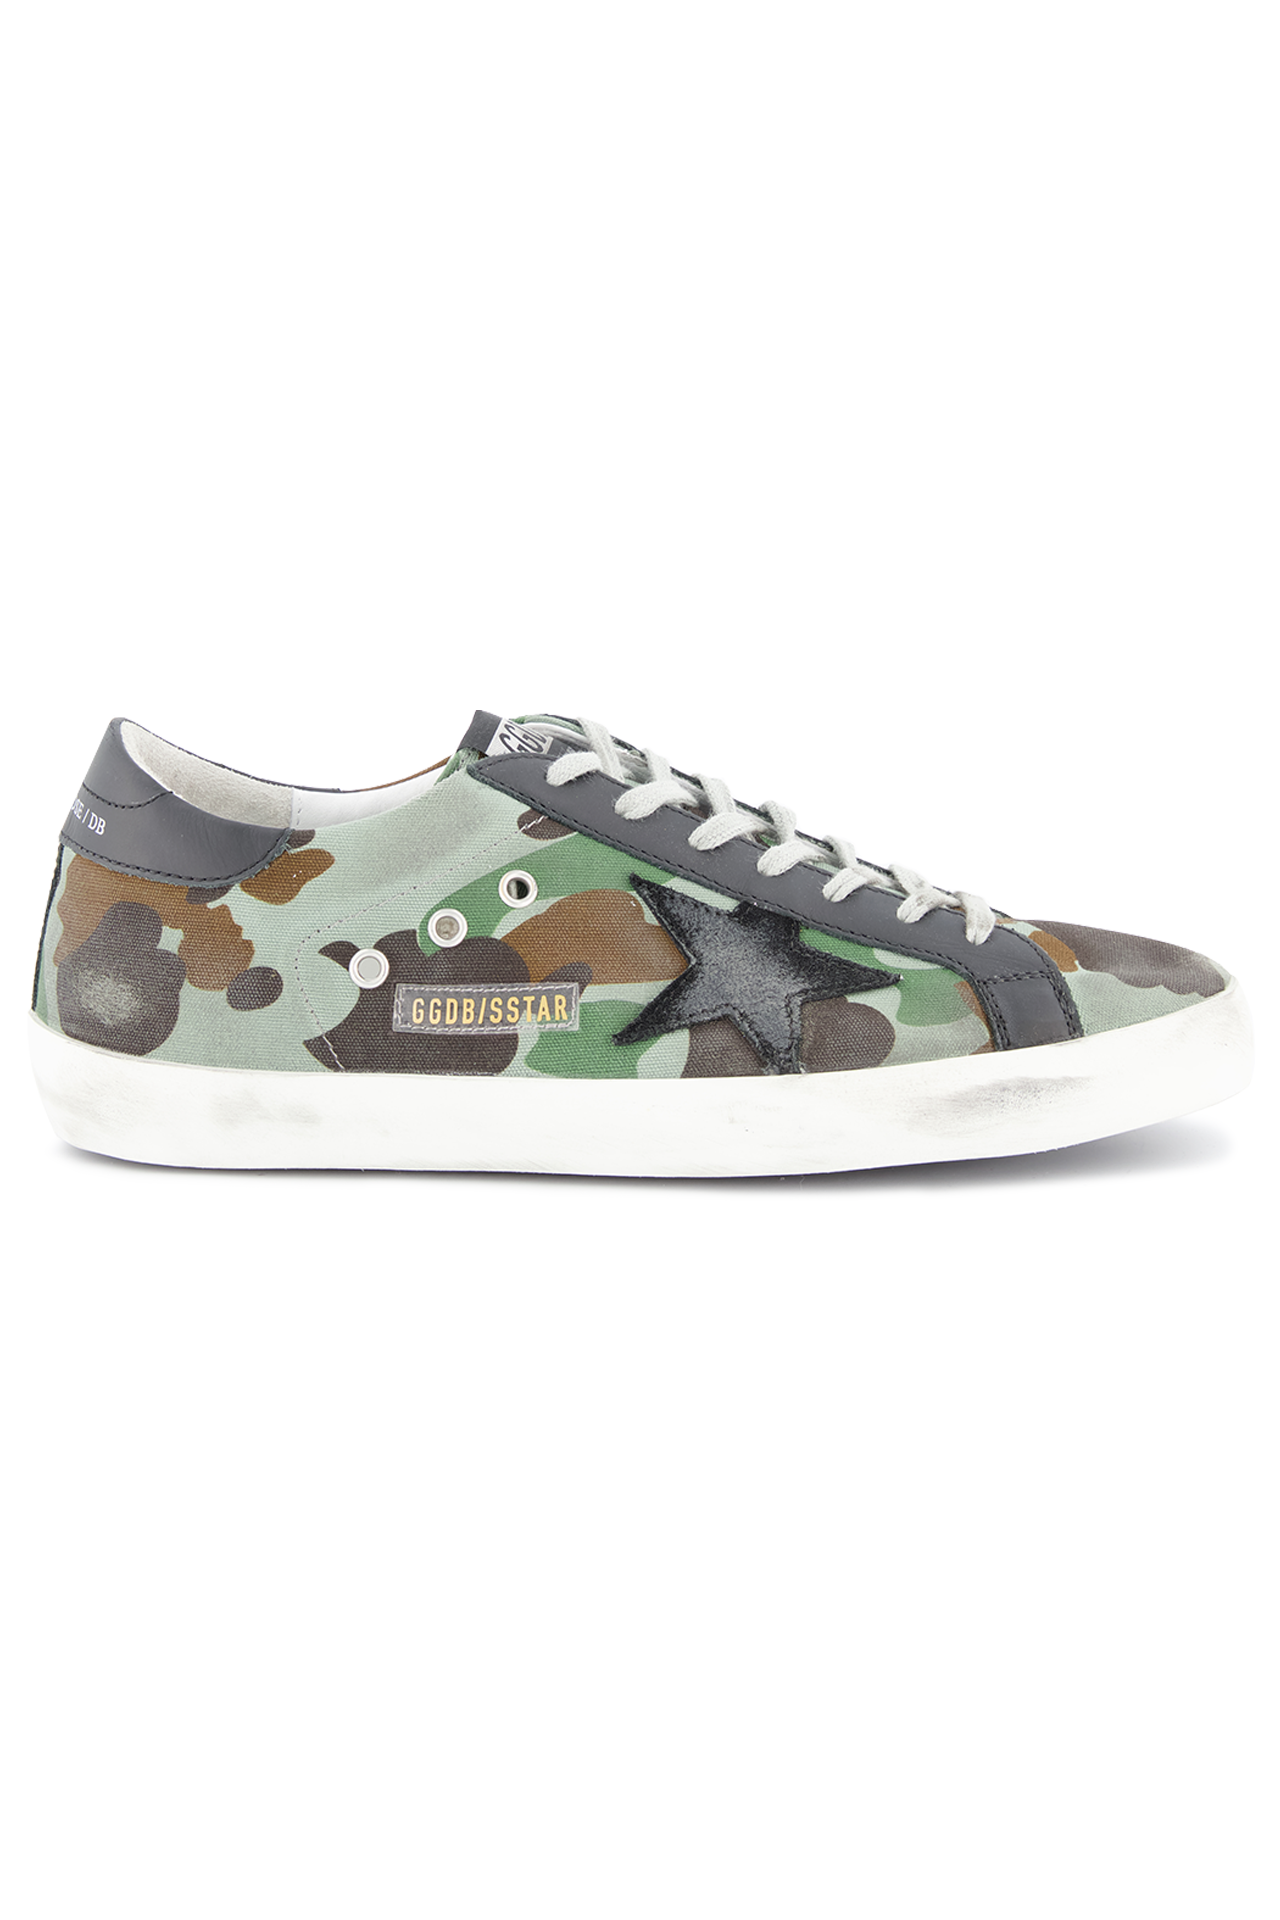 Side view image of Golden Goose Men's Superstar Low Top Sneakers Camouflage